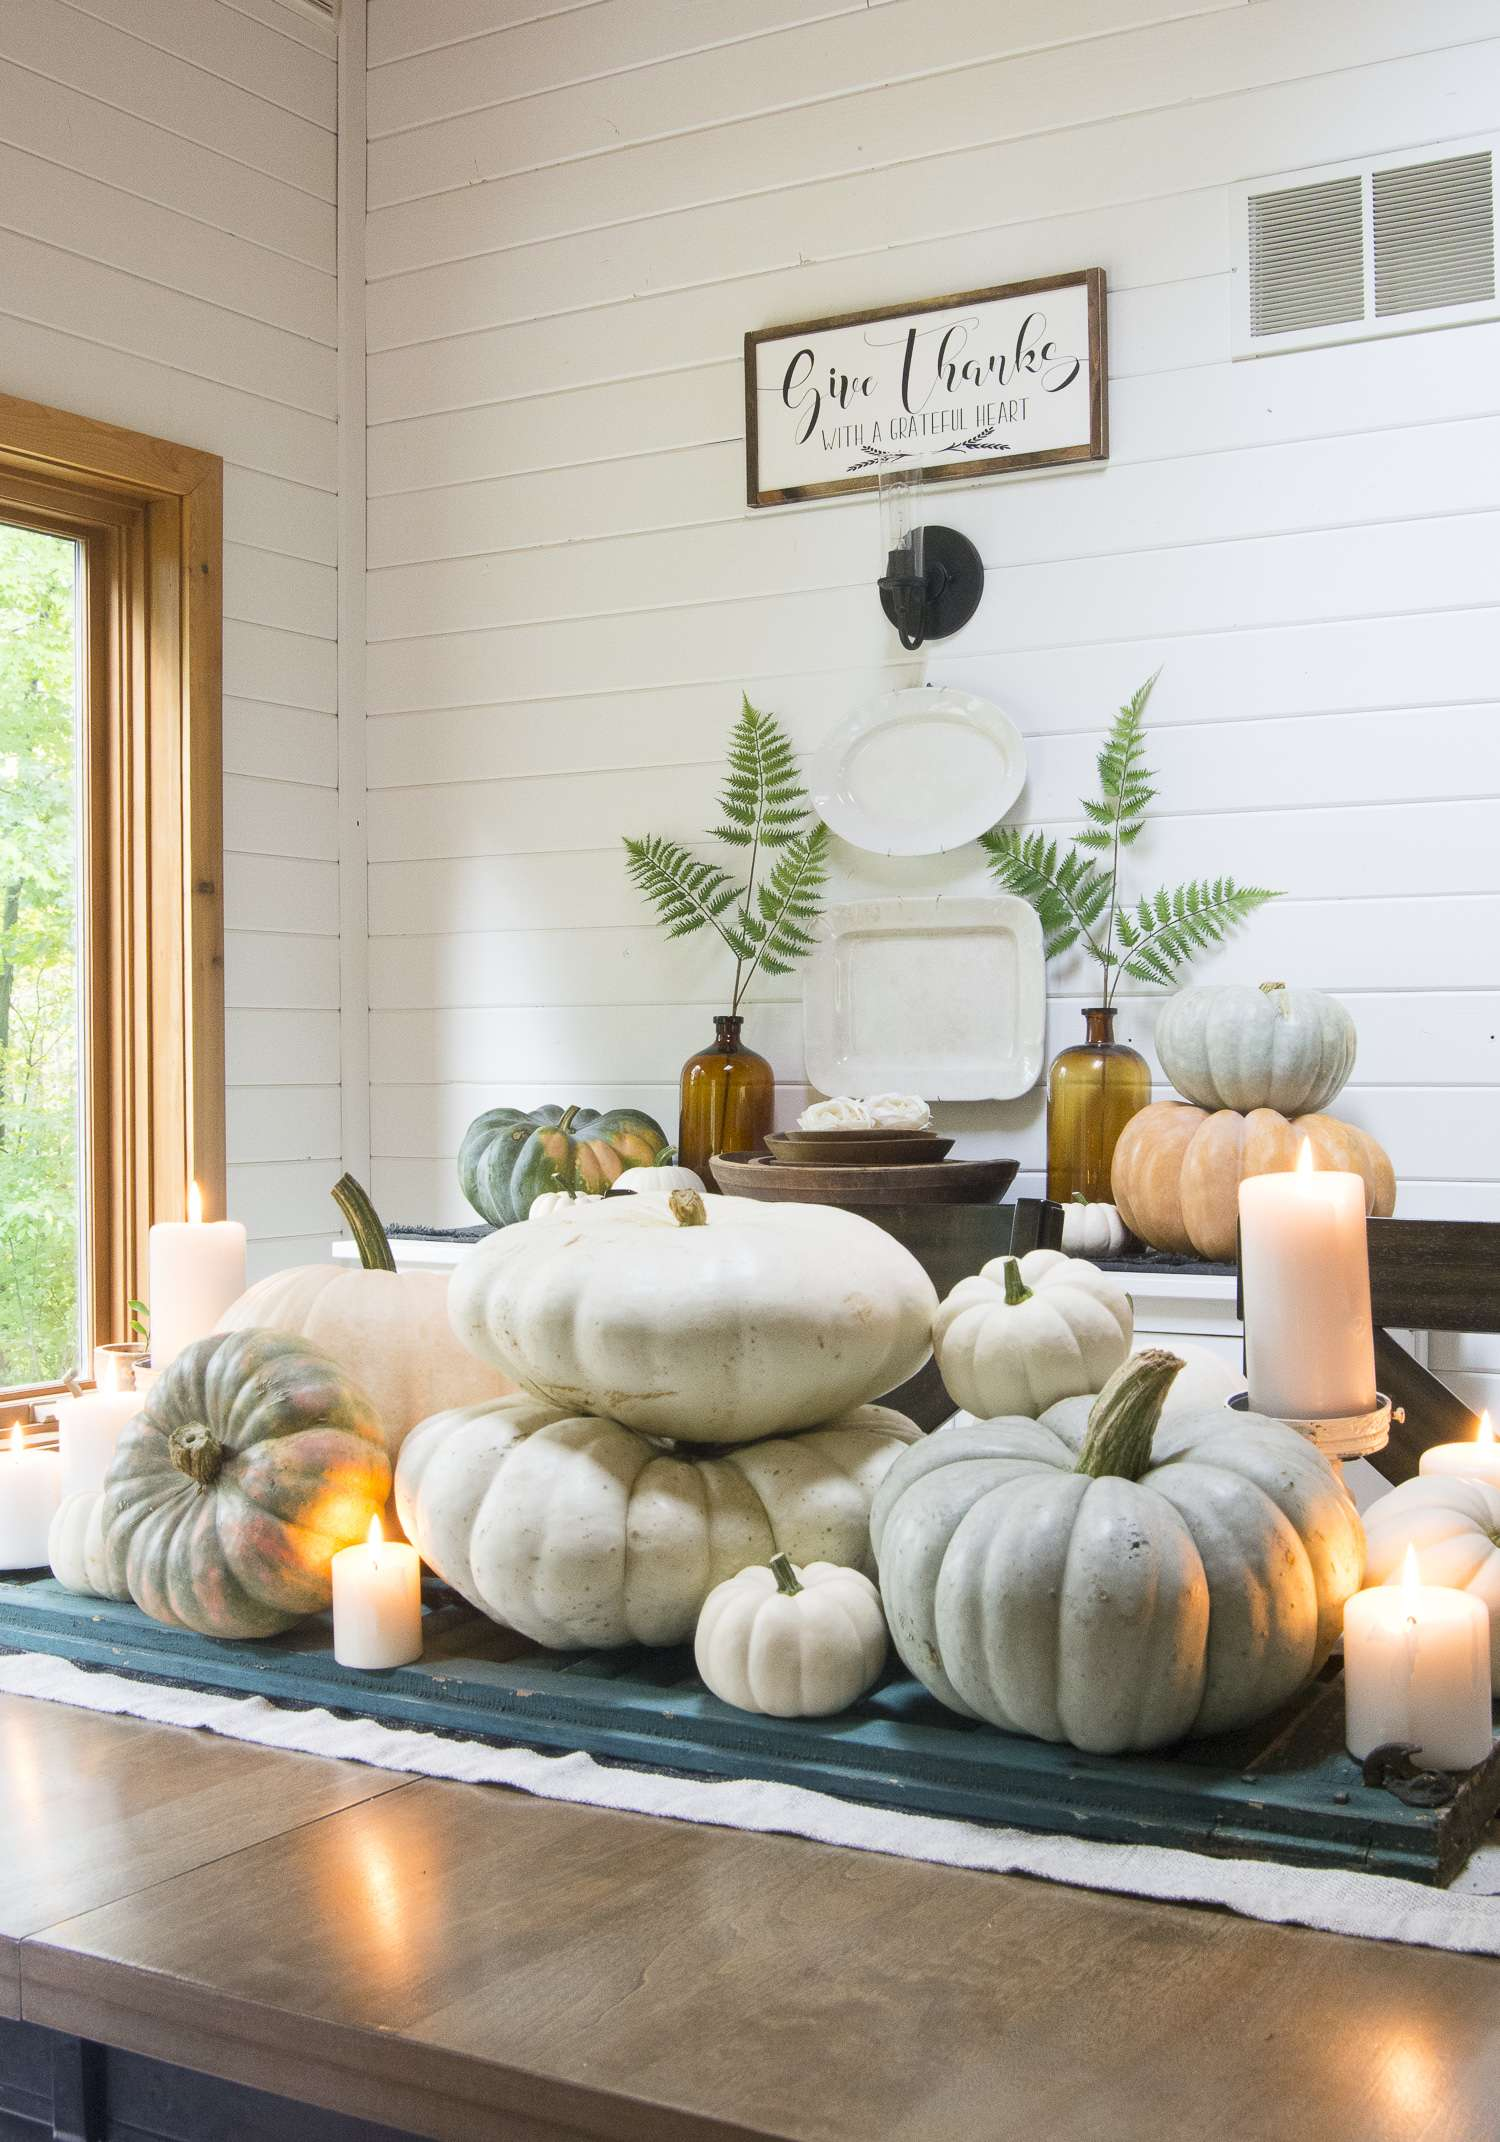 Do you need new ideas for beautiful dining room decor without all the fuss? Click here to see two simple ways to create a styled fall dining room with ease.